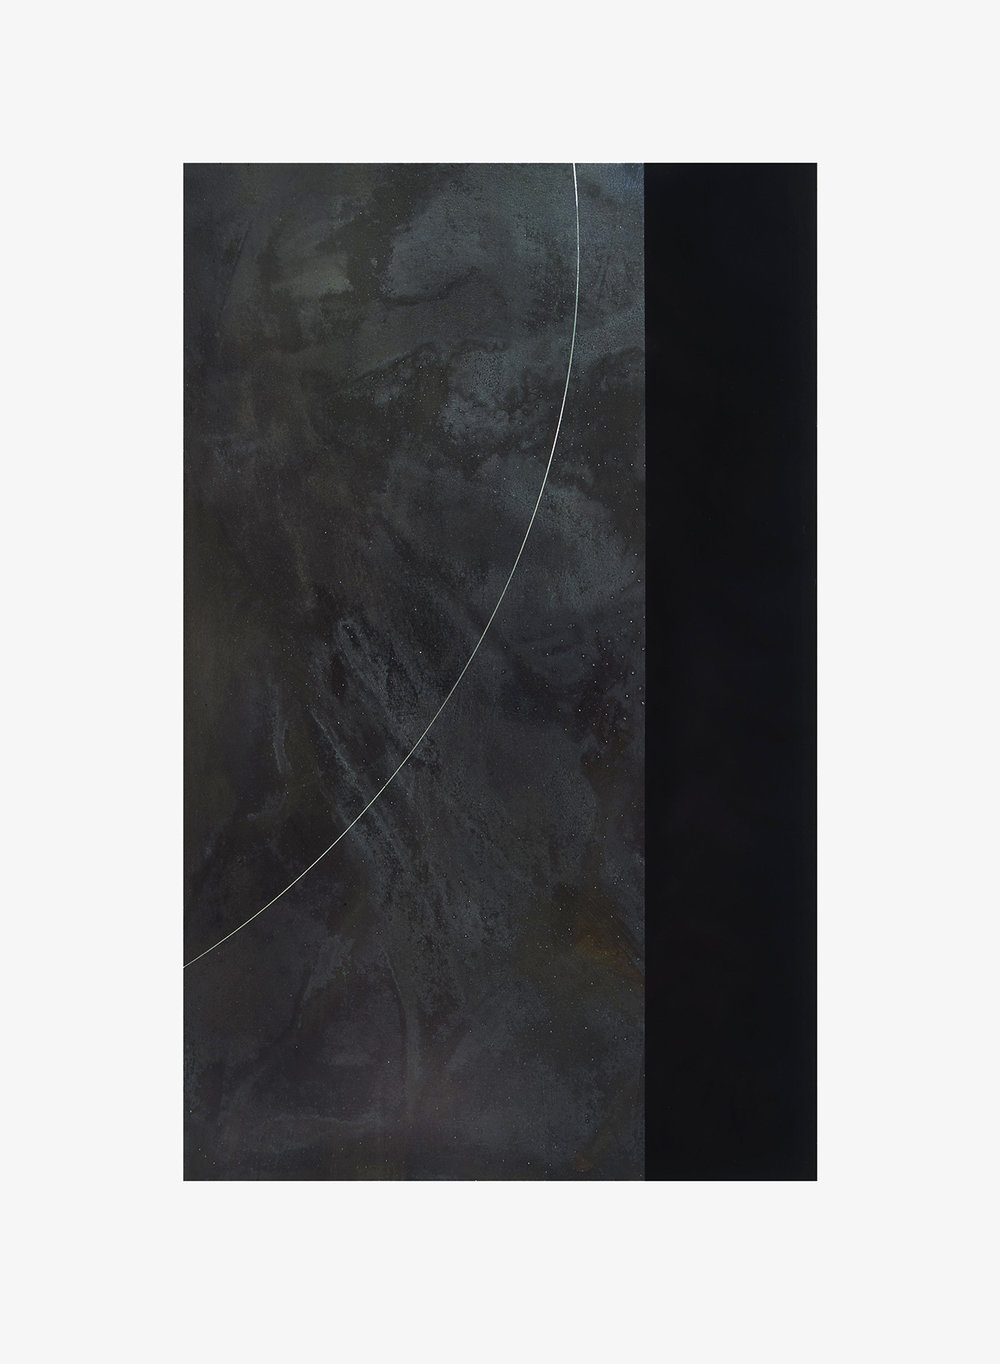 DRIFT (I) 2002  carbon deposit, oxidised zinc and graphite  84.2 x 65.3 cm   (private collection UK)